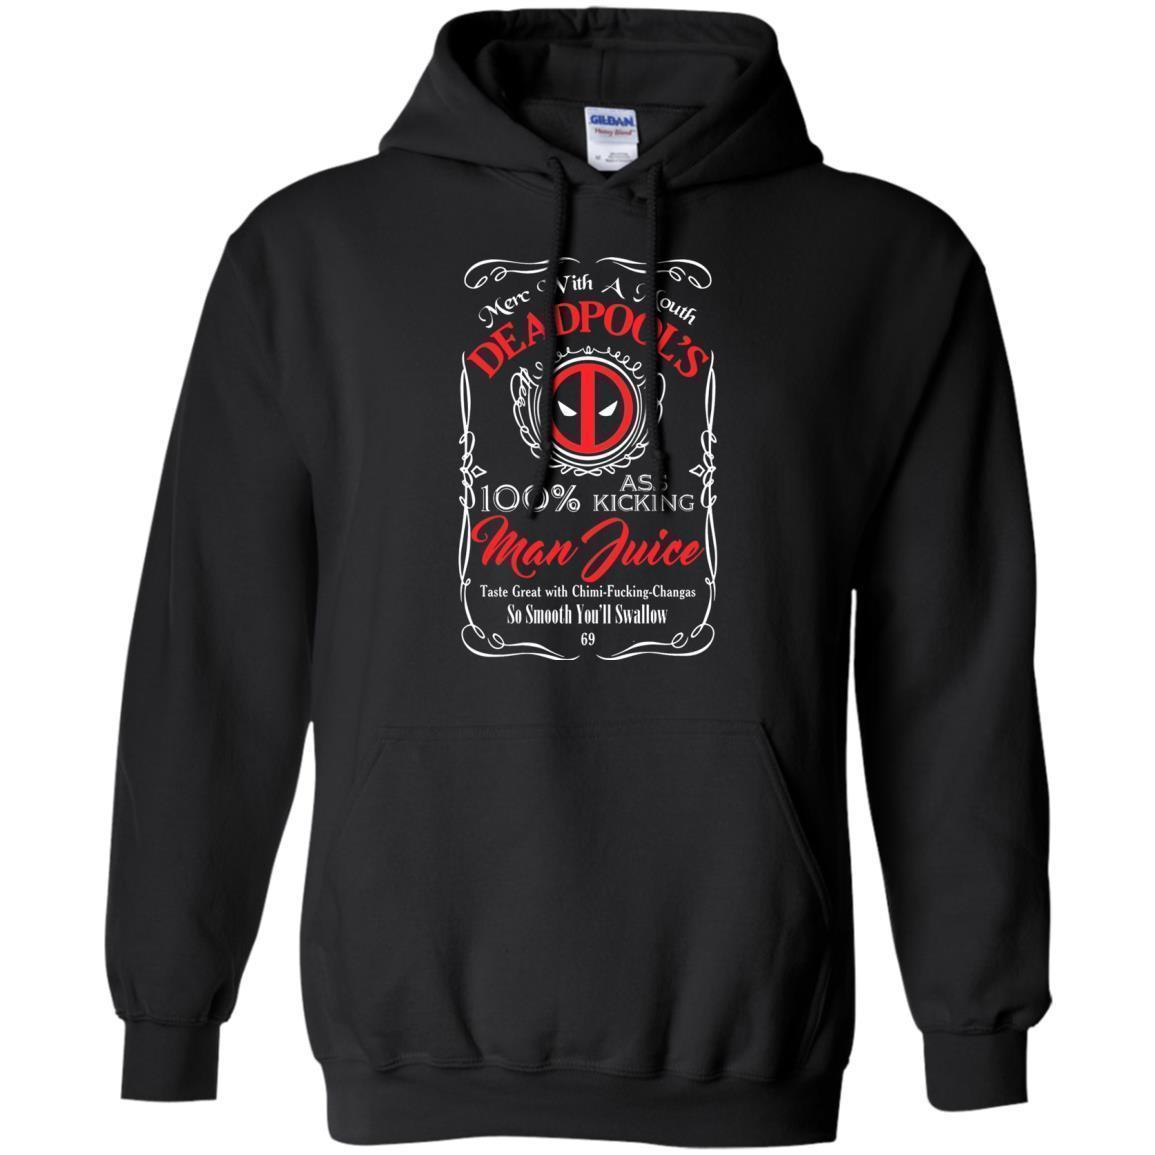 Deadpool The Merc With A Mouth Man Juice Hoodie